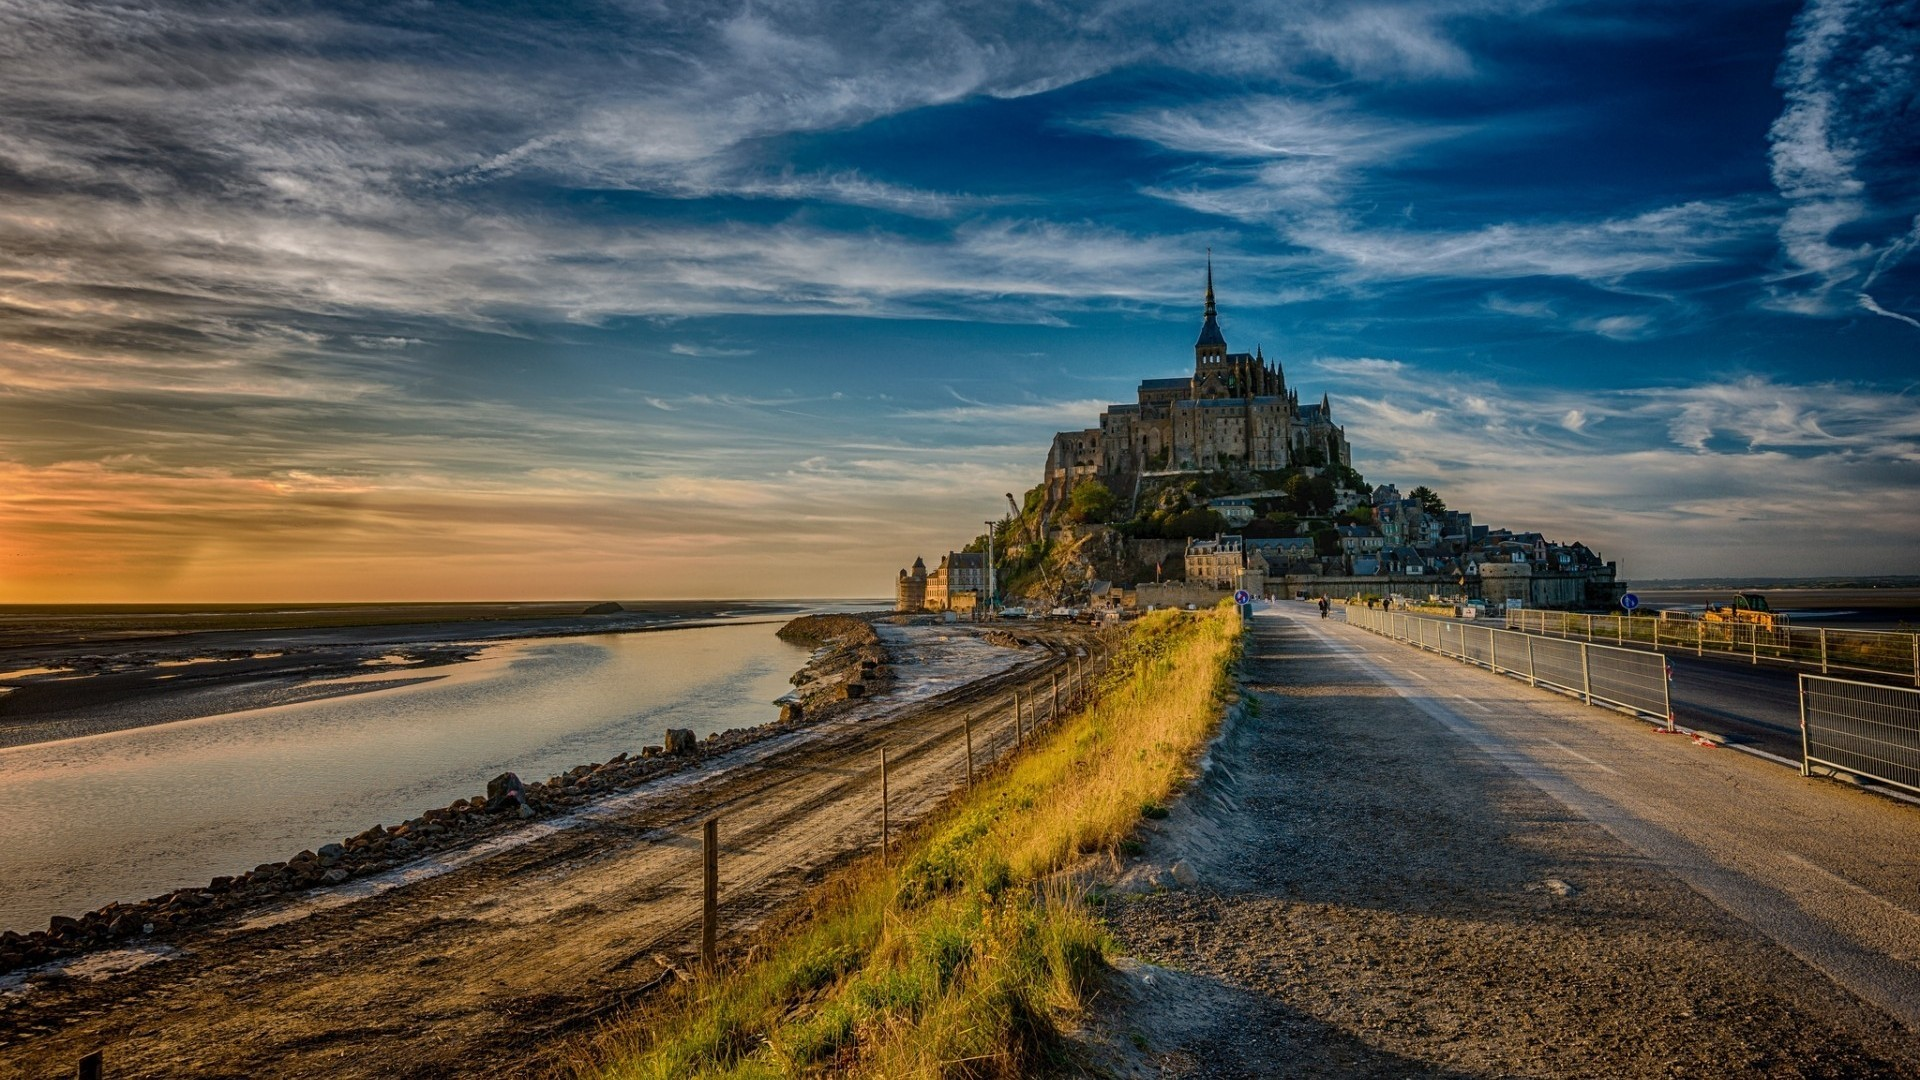 General 1920x1080 Mont Saint-Michel road castle clouds water Abbey island